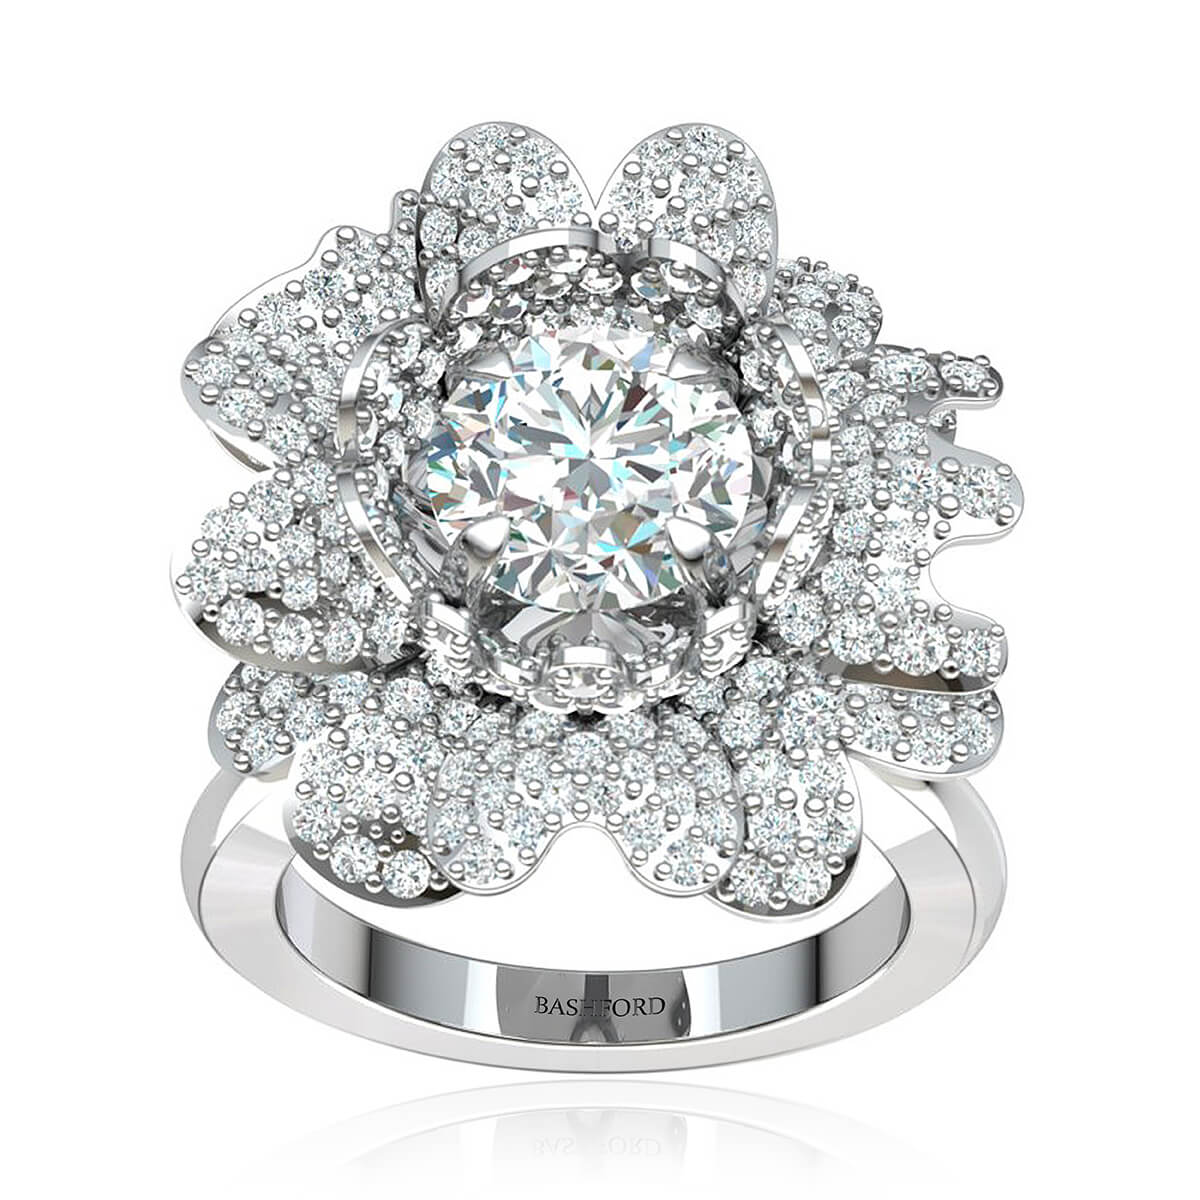 The Daisy Diamond Ring